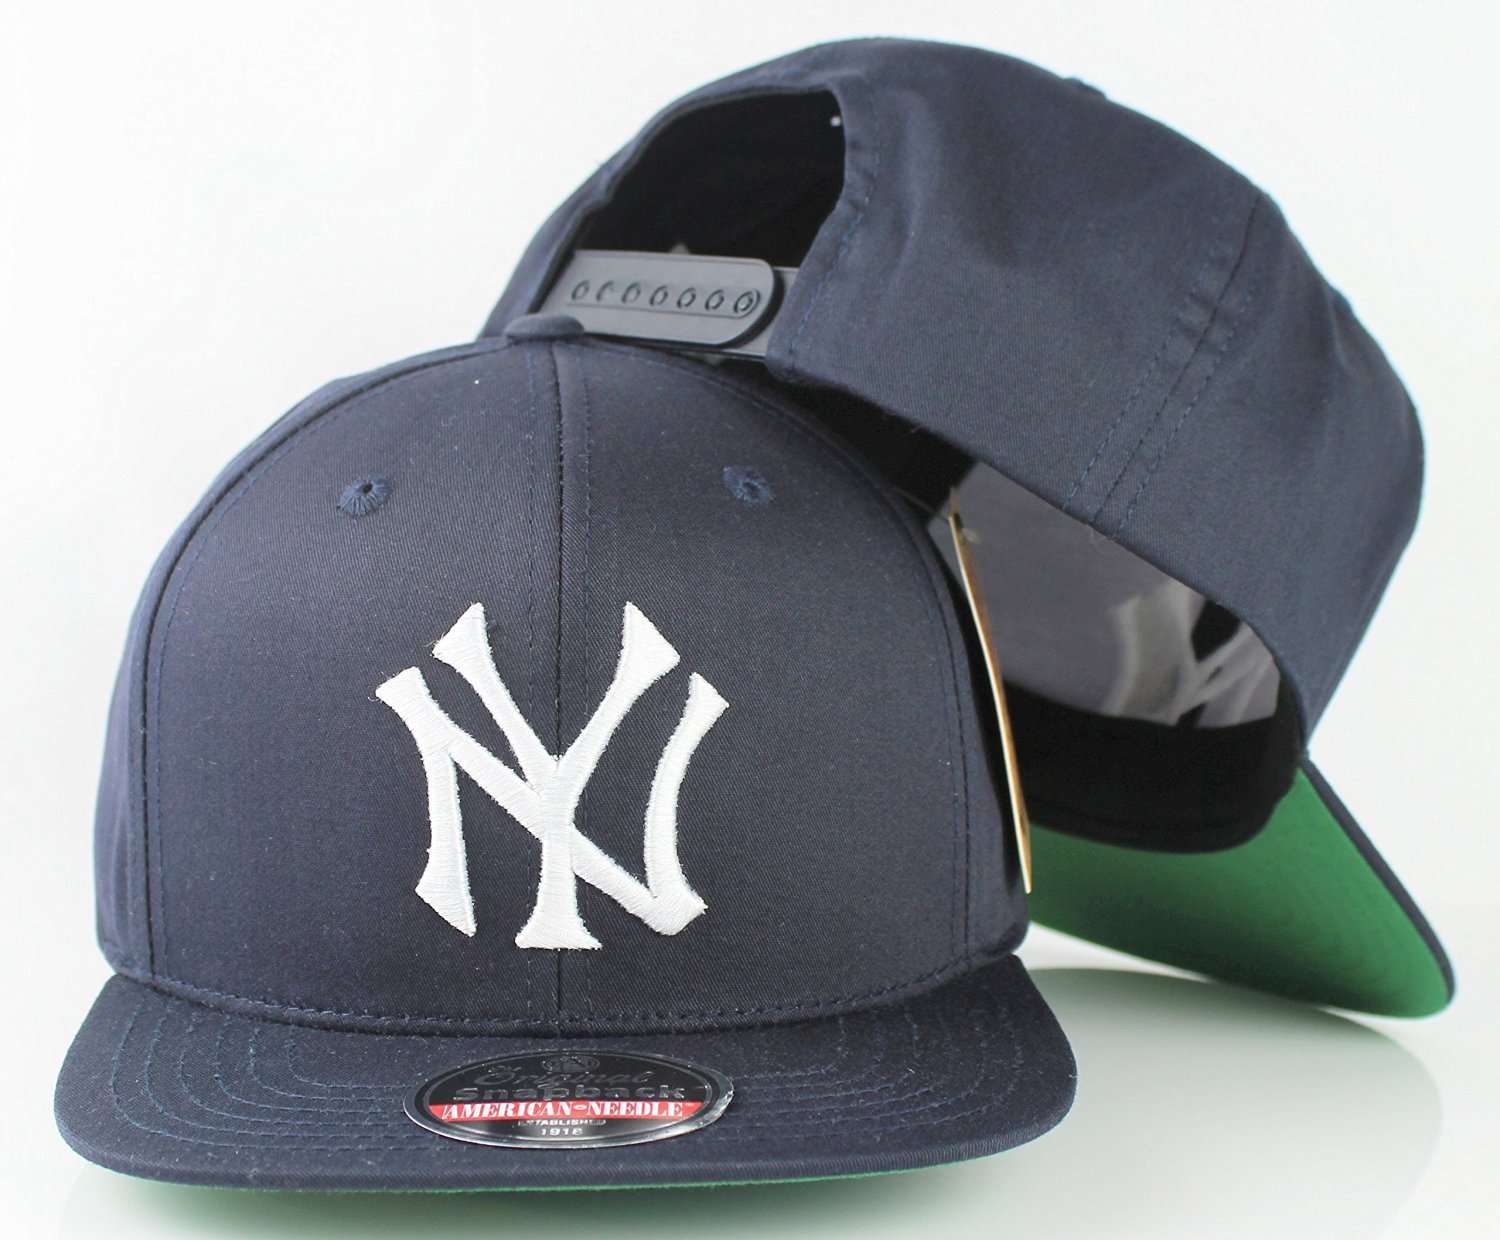 0802dc16c75 Get Quotations · New York Yankees MLB American Needle Outfield Retro Flat  Brim Snapback Cap